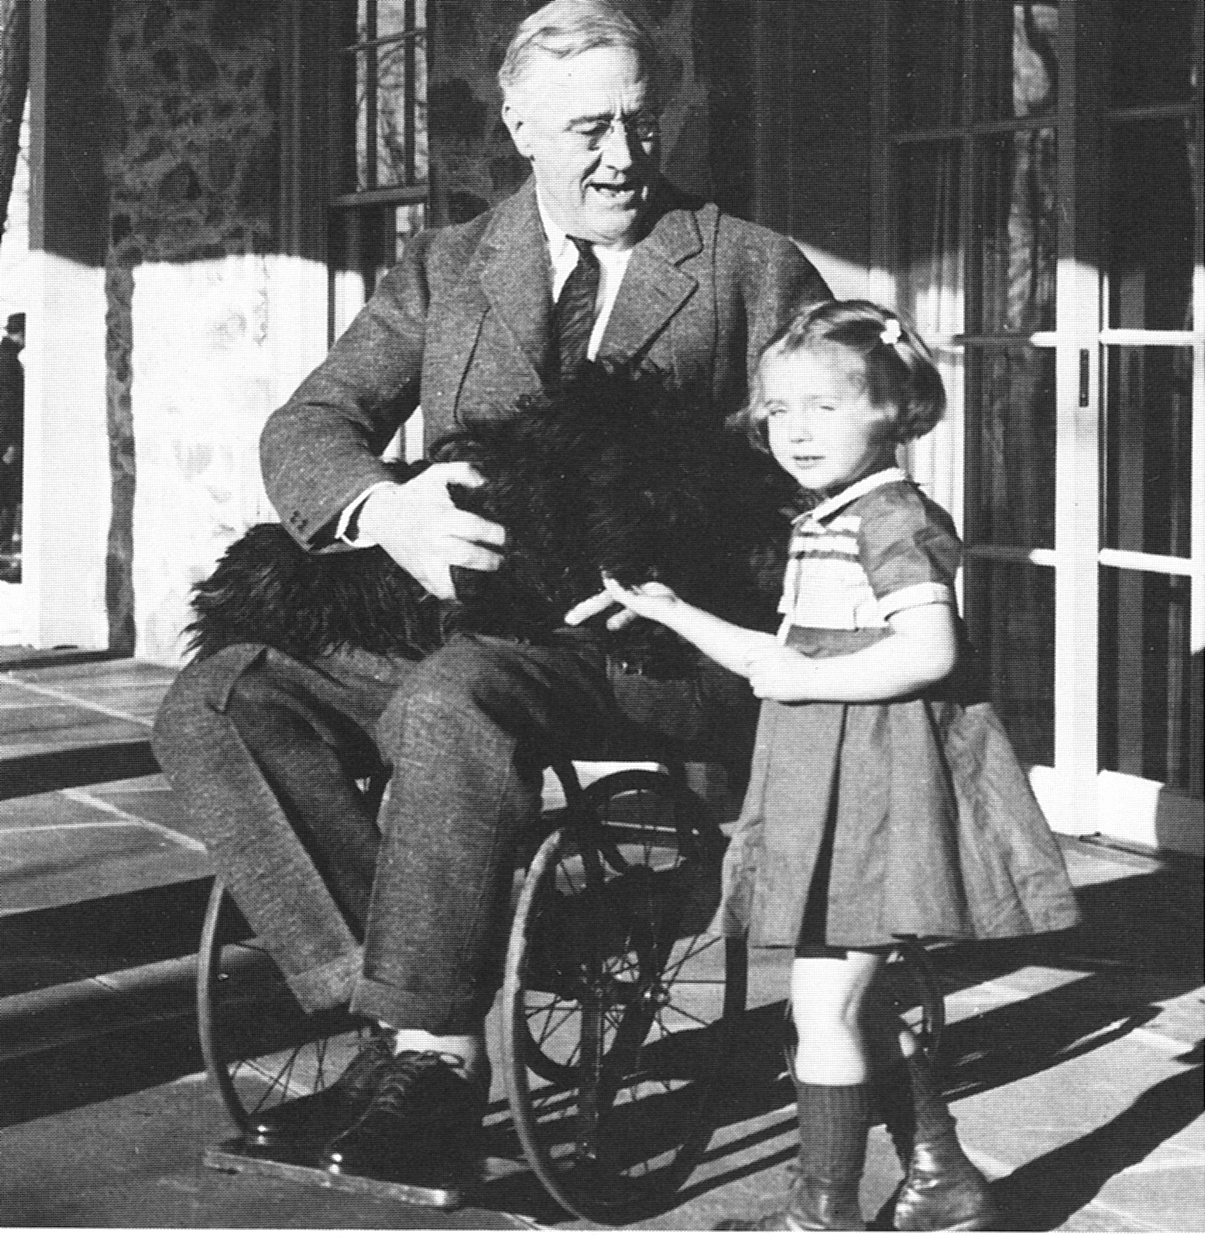 FDR in 1941. One of only a few pictures ever taken of him in a wheelchair.